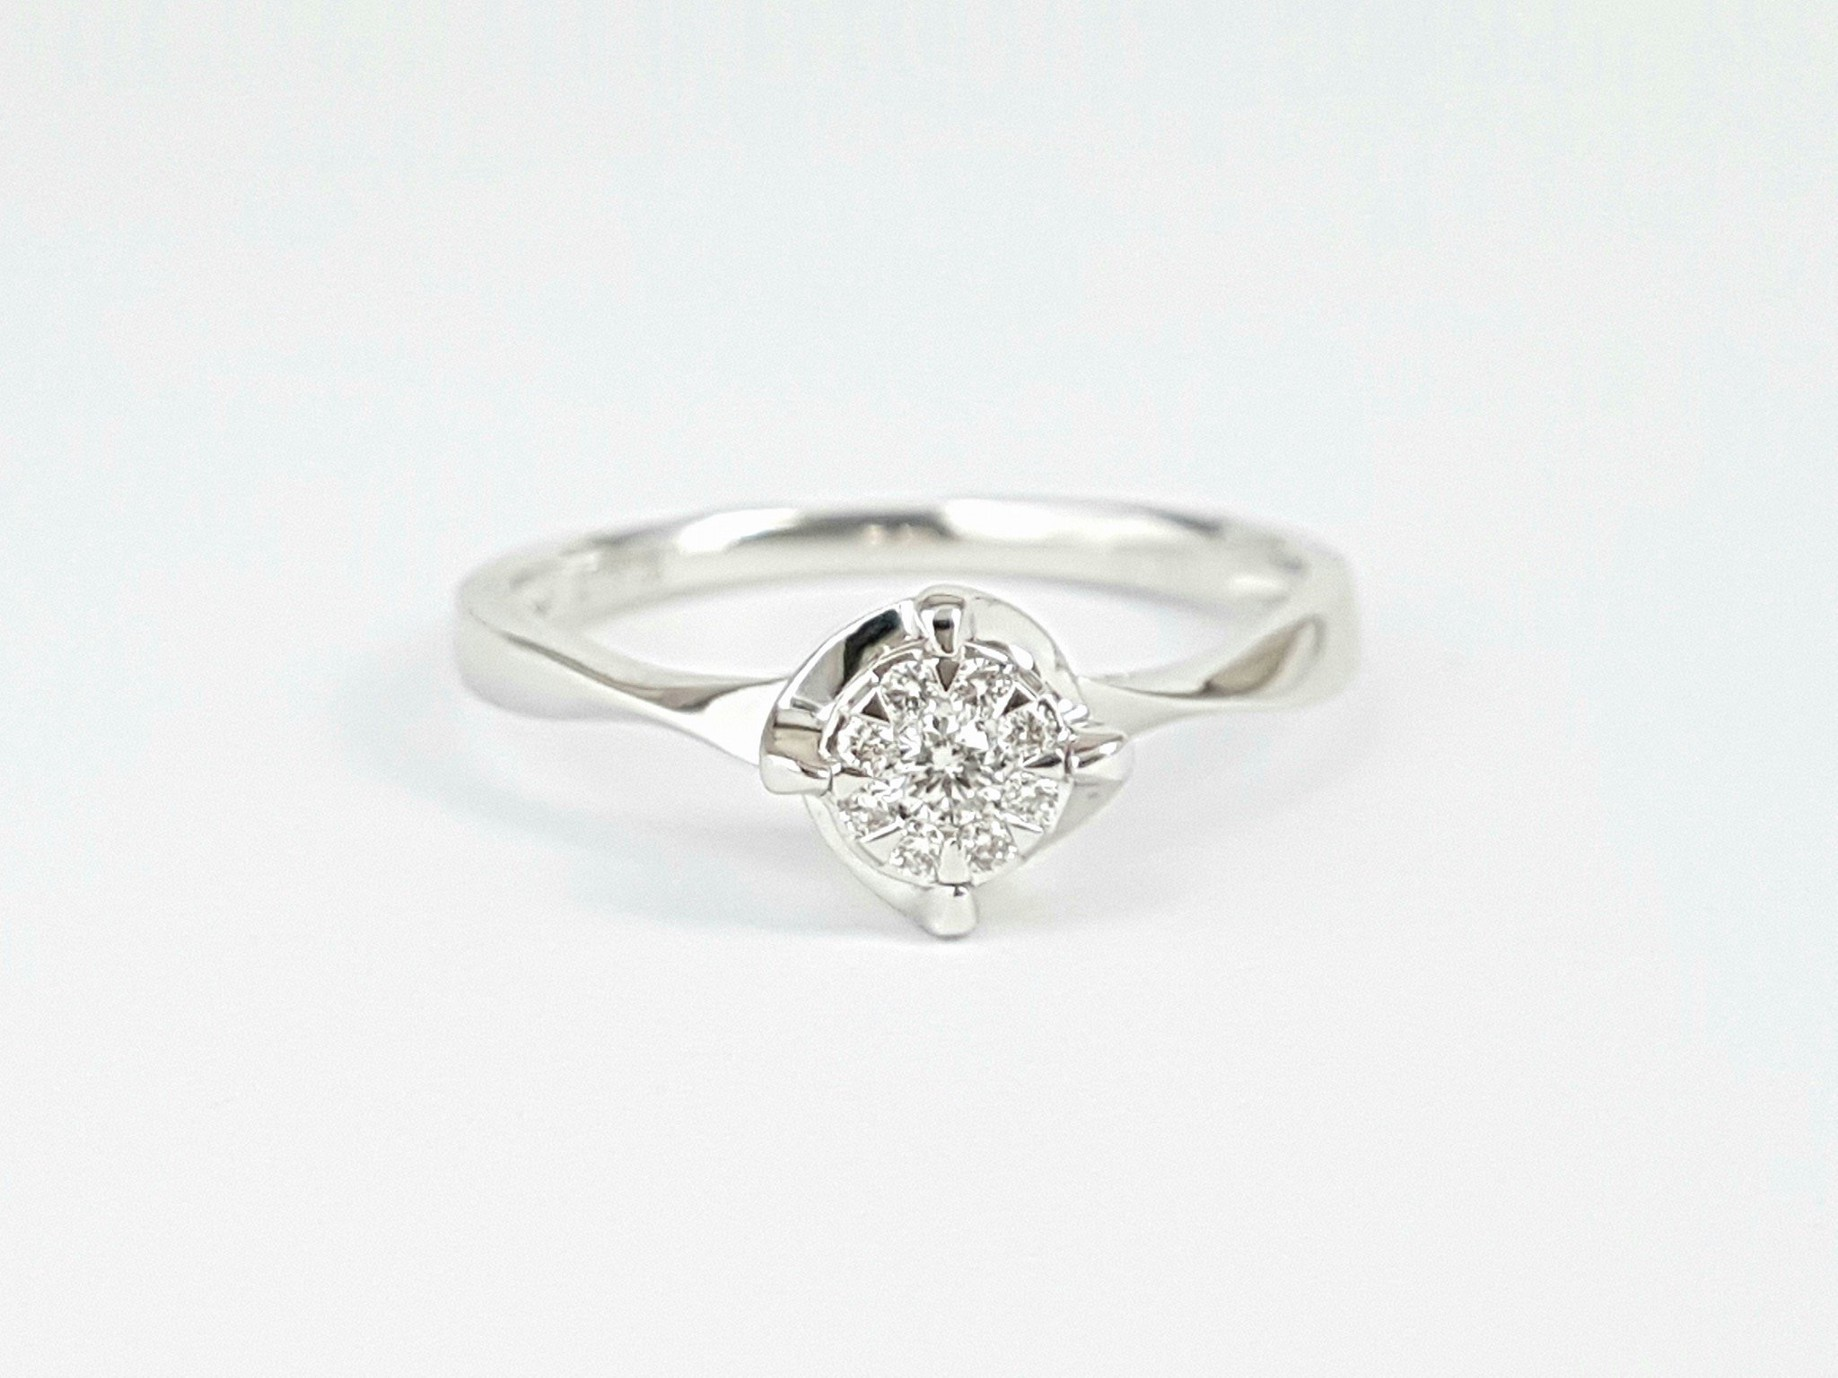 dbf7fe9f41beb 5 Things Guys Should Consider in Buying an Engagement Ring